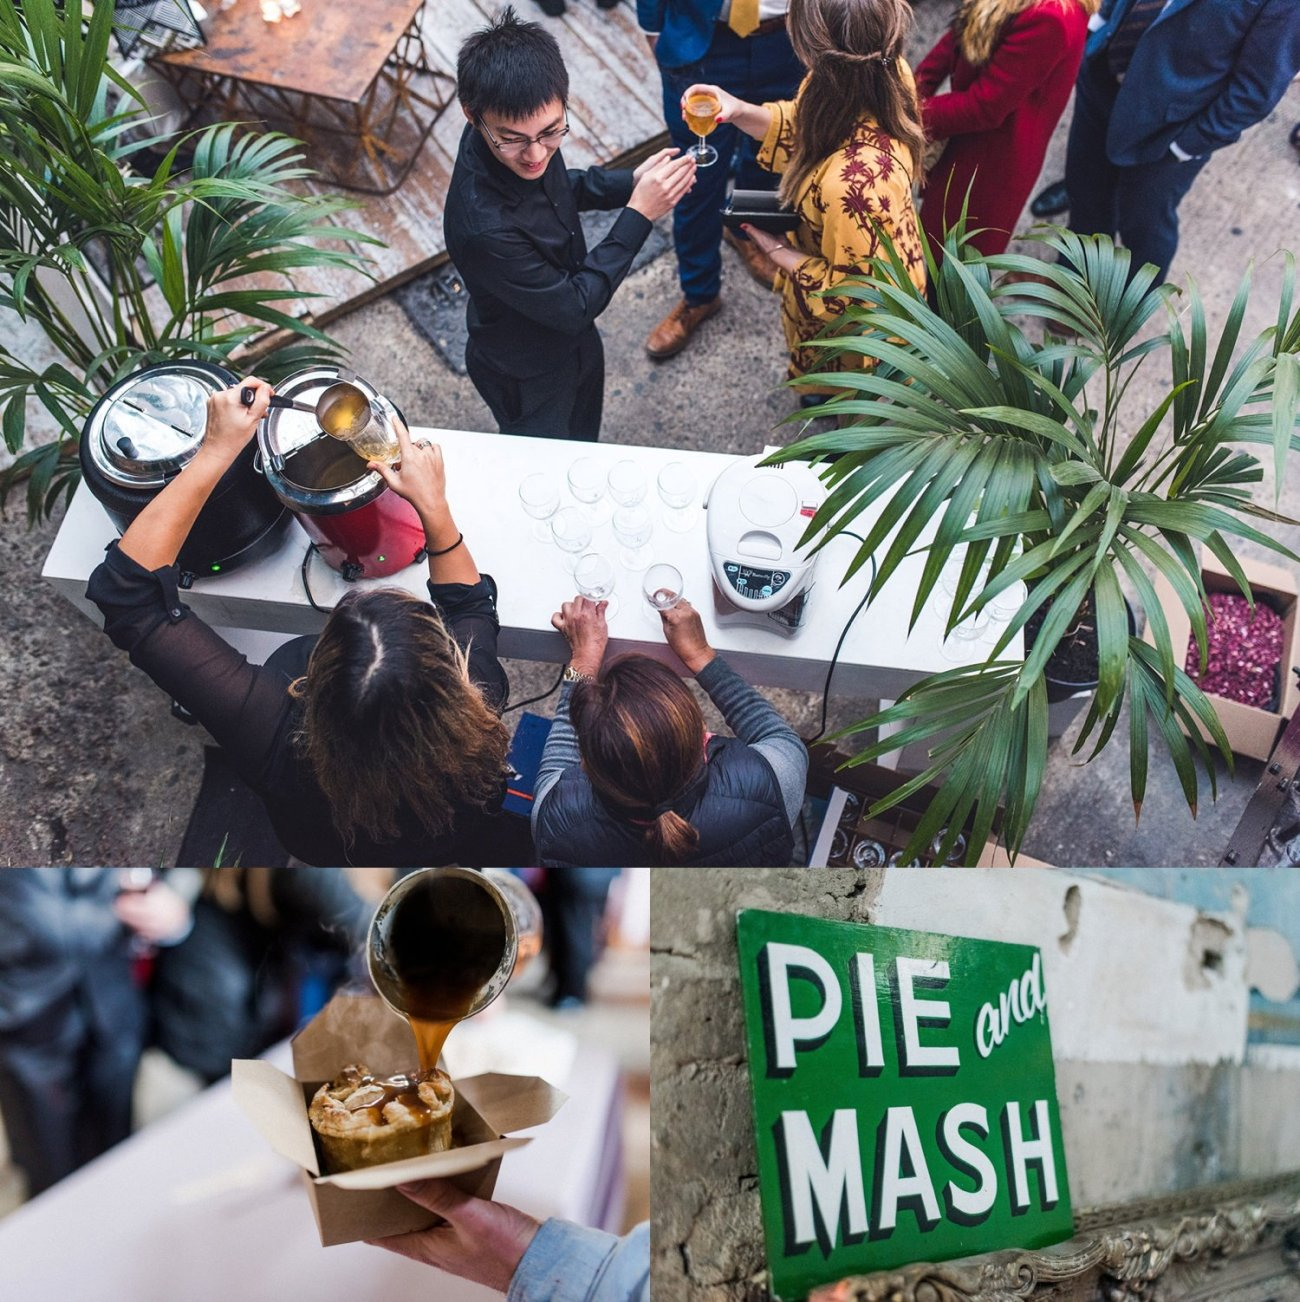 Mulled cider and pie and mash served at winter wedding